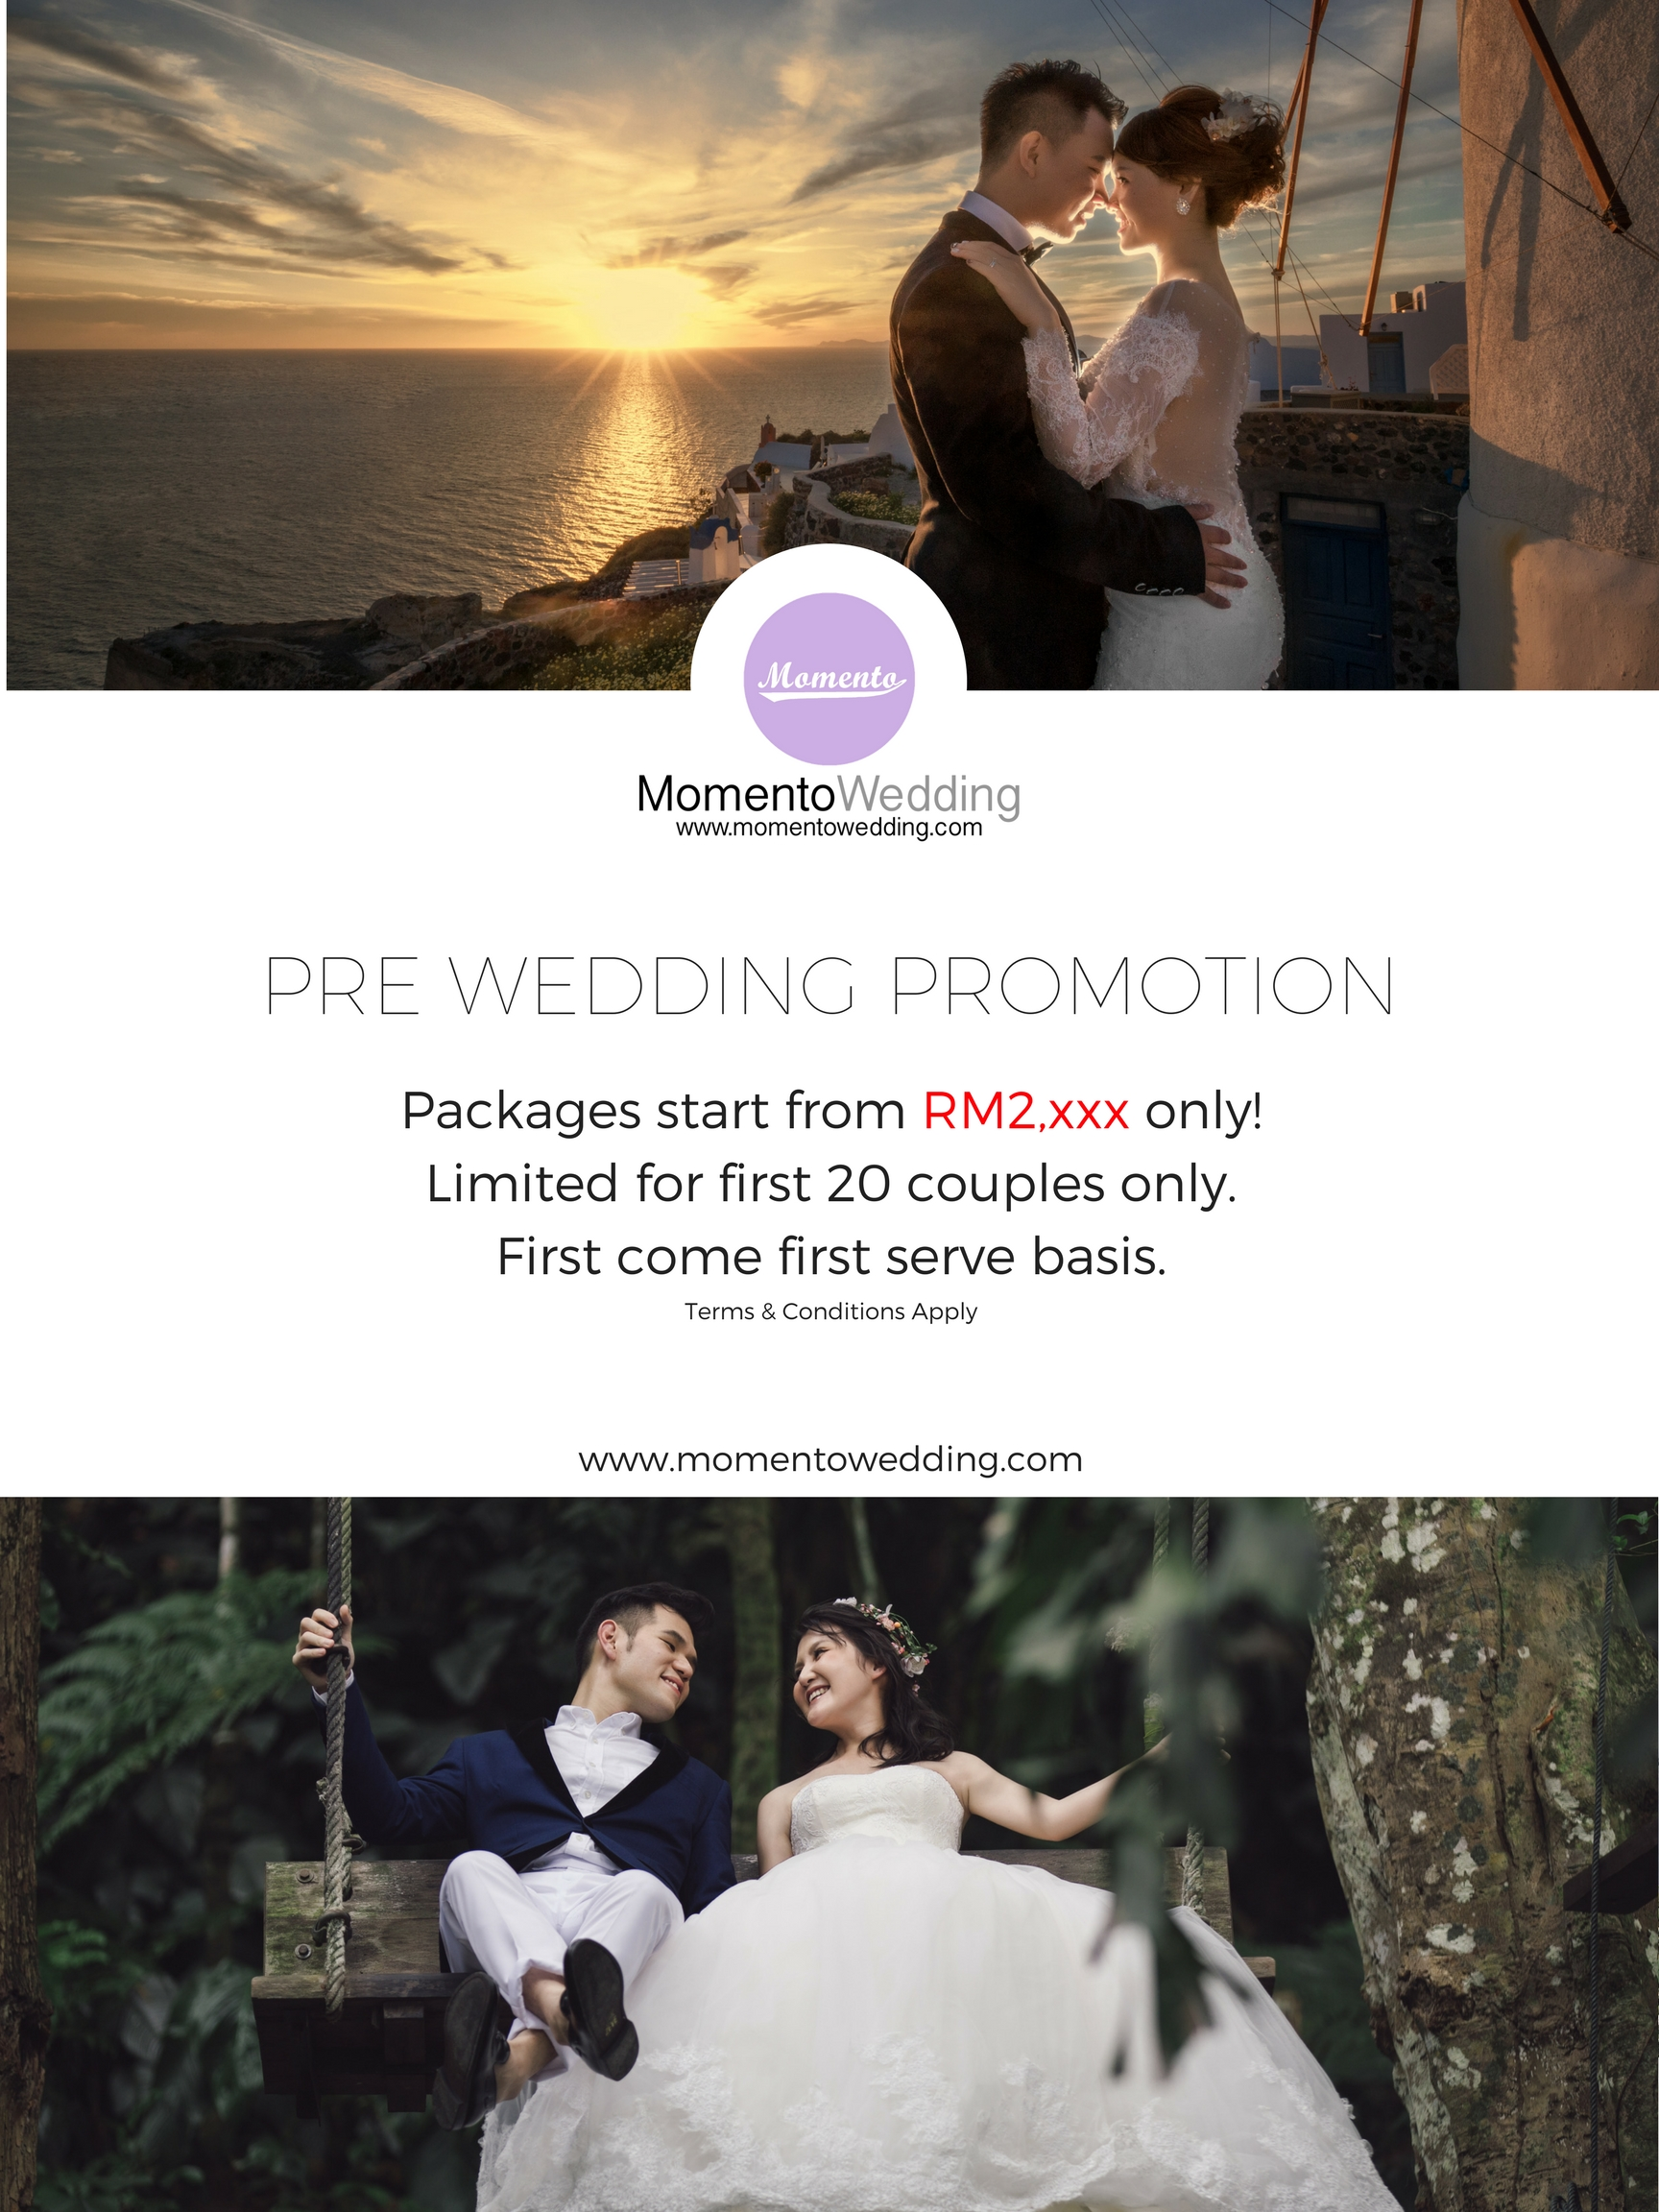 Grab Now During This Promotion Period You Can A Pre Wedding Package